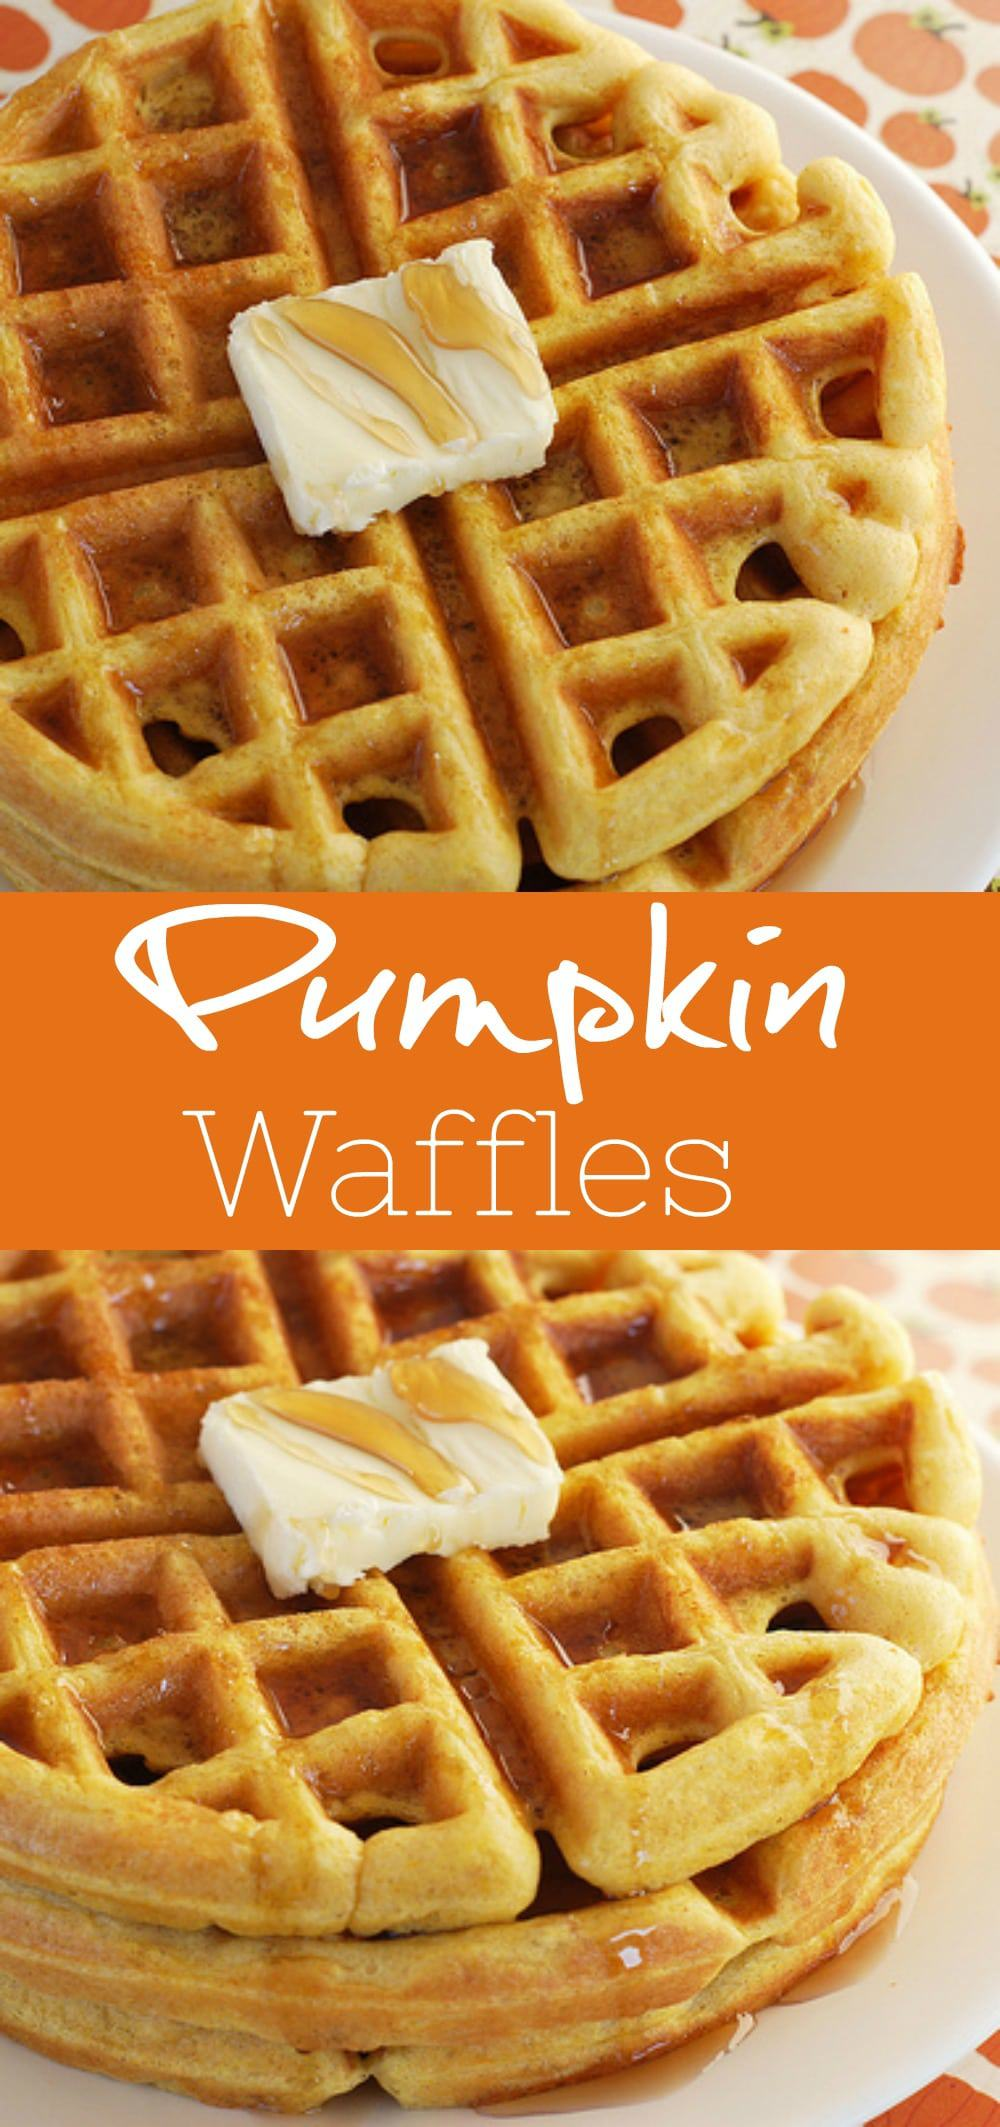 Pumpkin Waffles - the perfect fall breakfast! It starts with a pancake mix so it's easy, fast, and delicious!